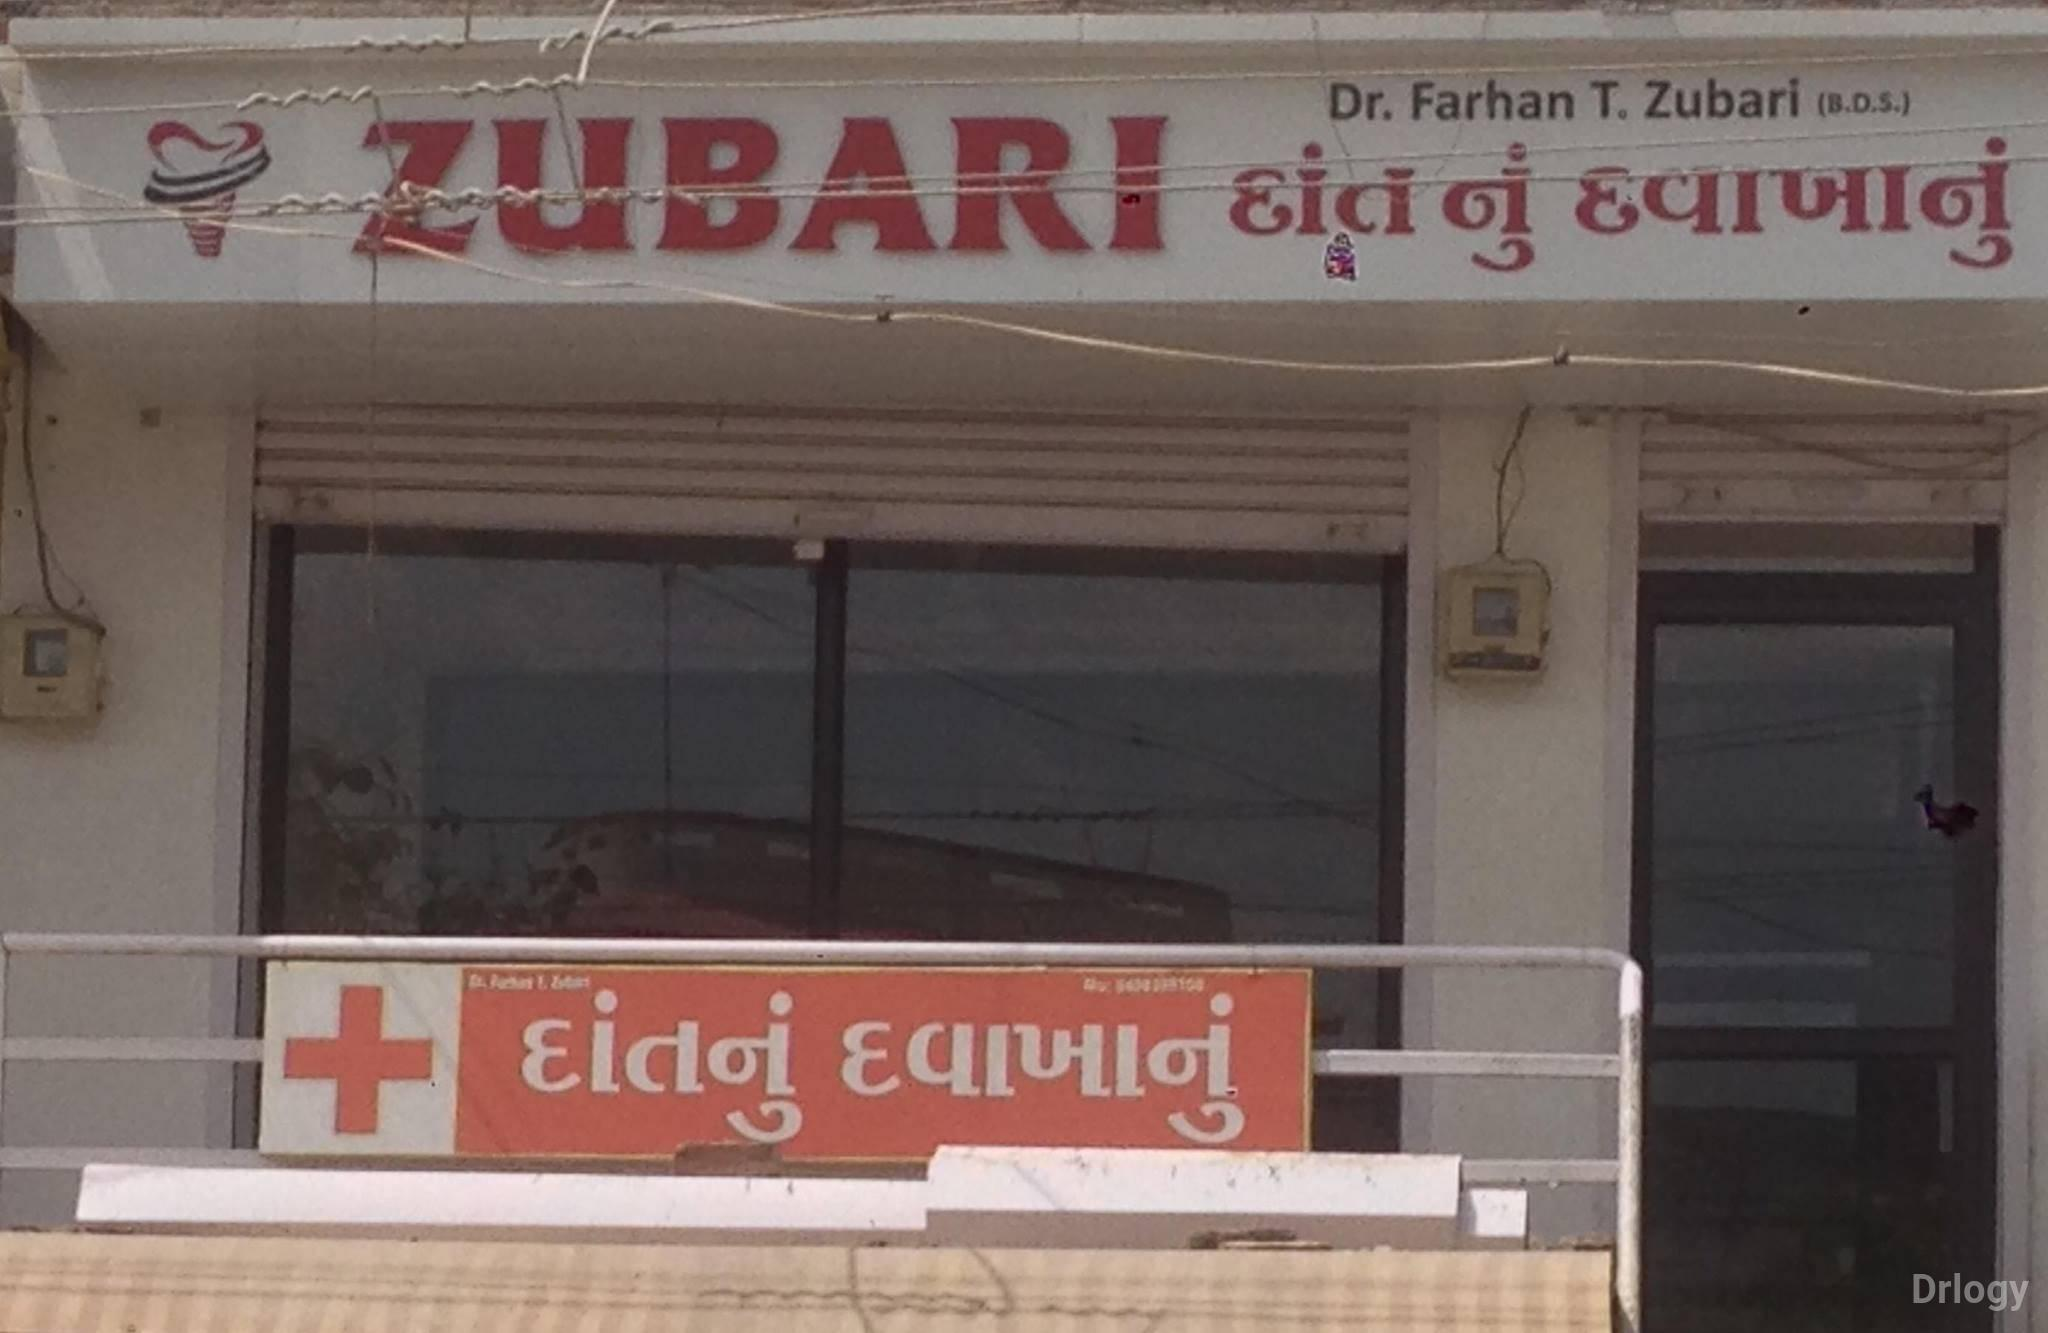 Zubari Implant and Dental Clinic in Anand